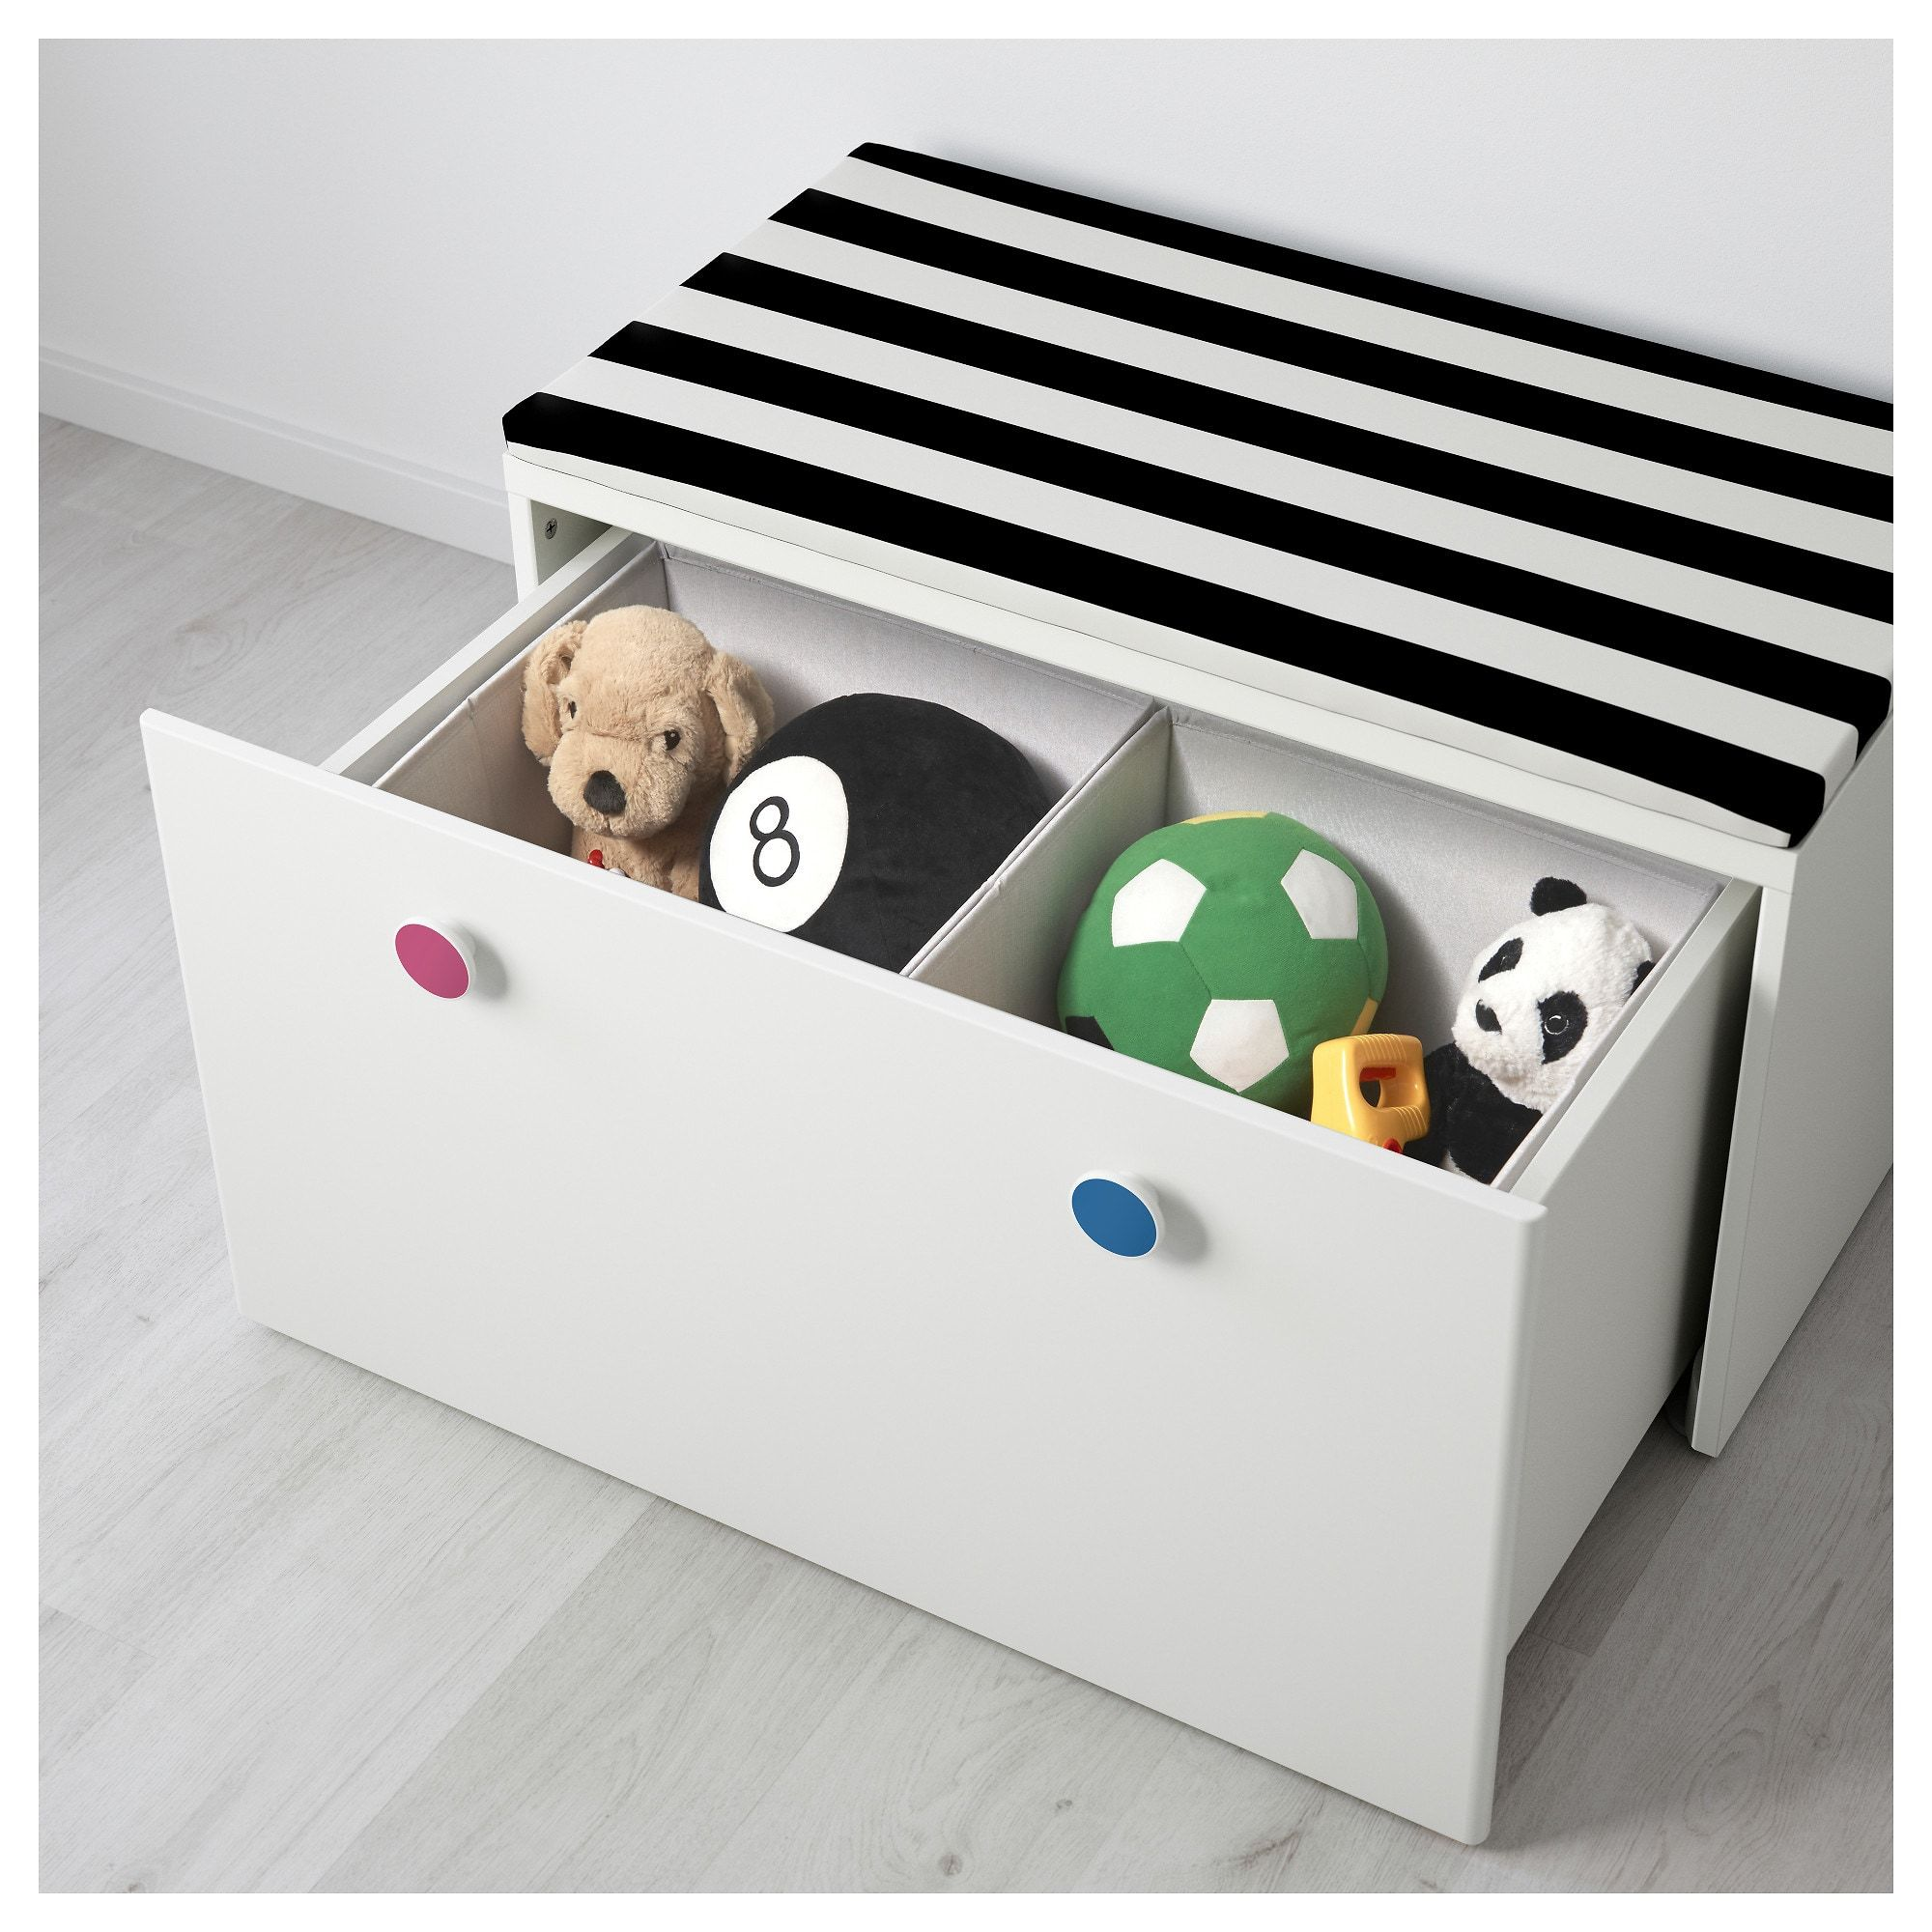 Astonishing Ikea Stuva Folja White Storage Bench Ikea Toy Storage Gamerscity Chair Design For Home Gamerscityorg